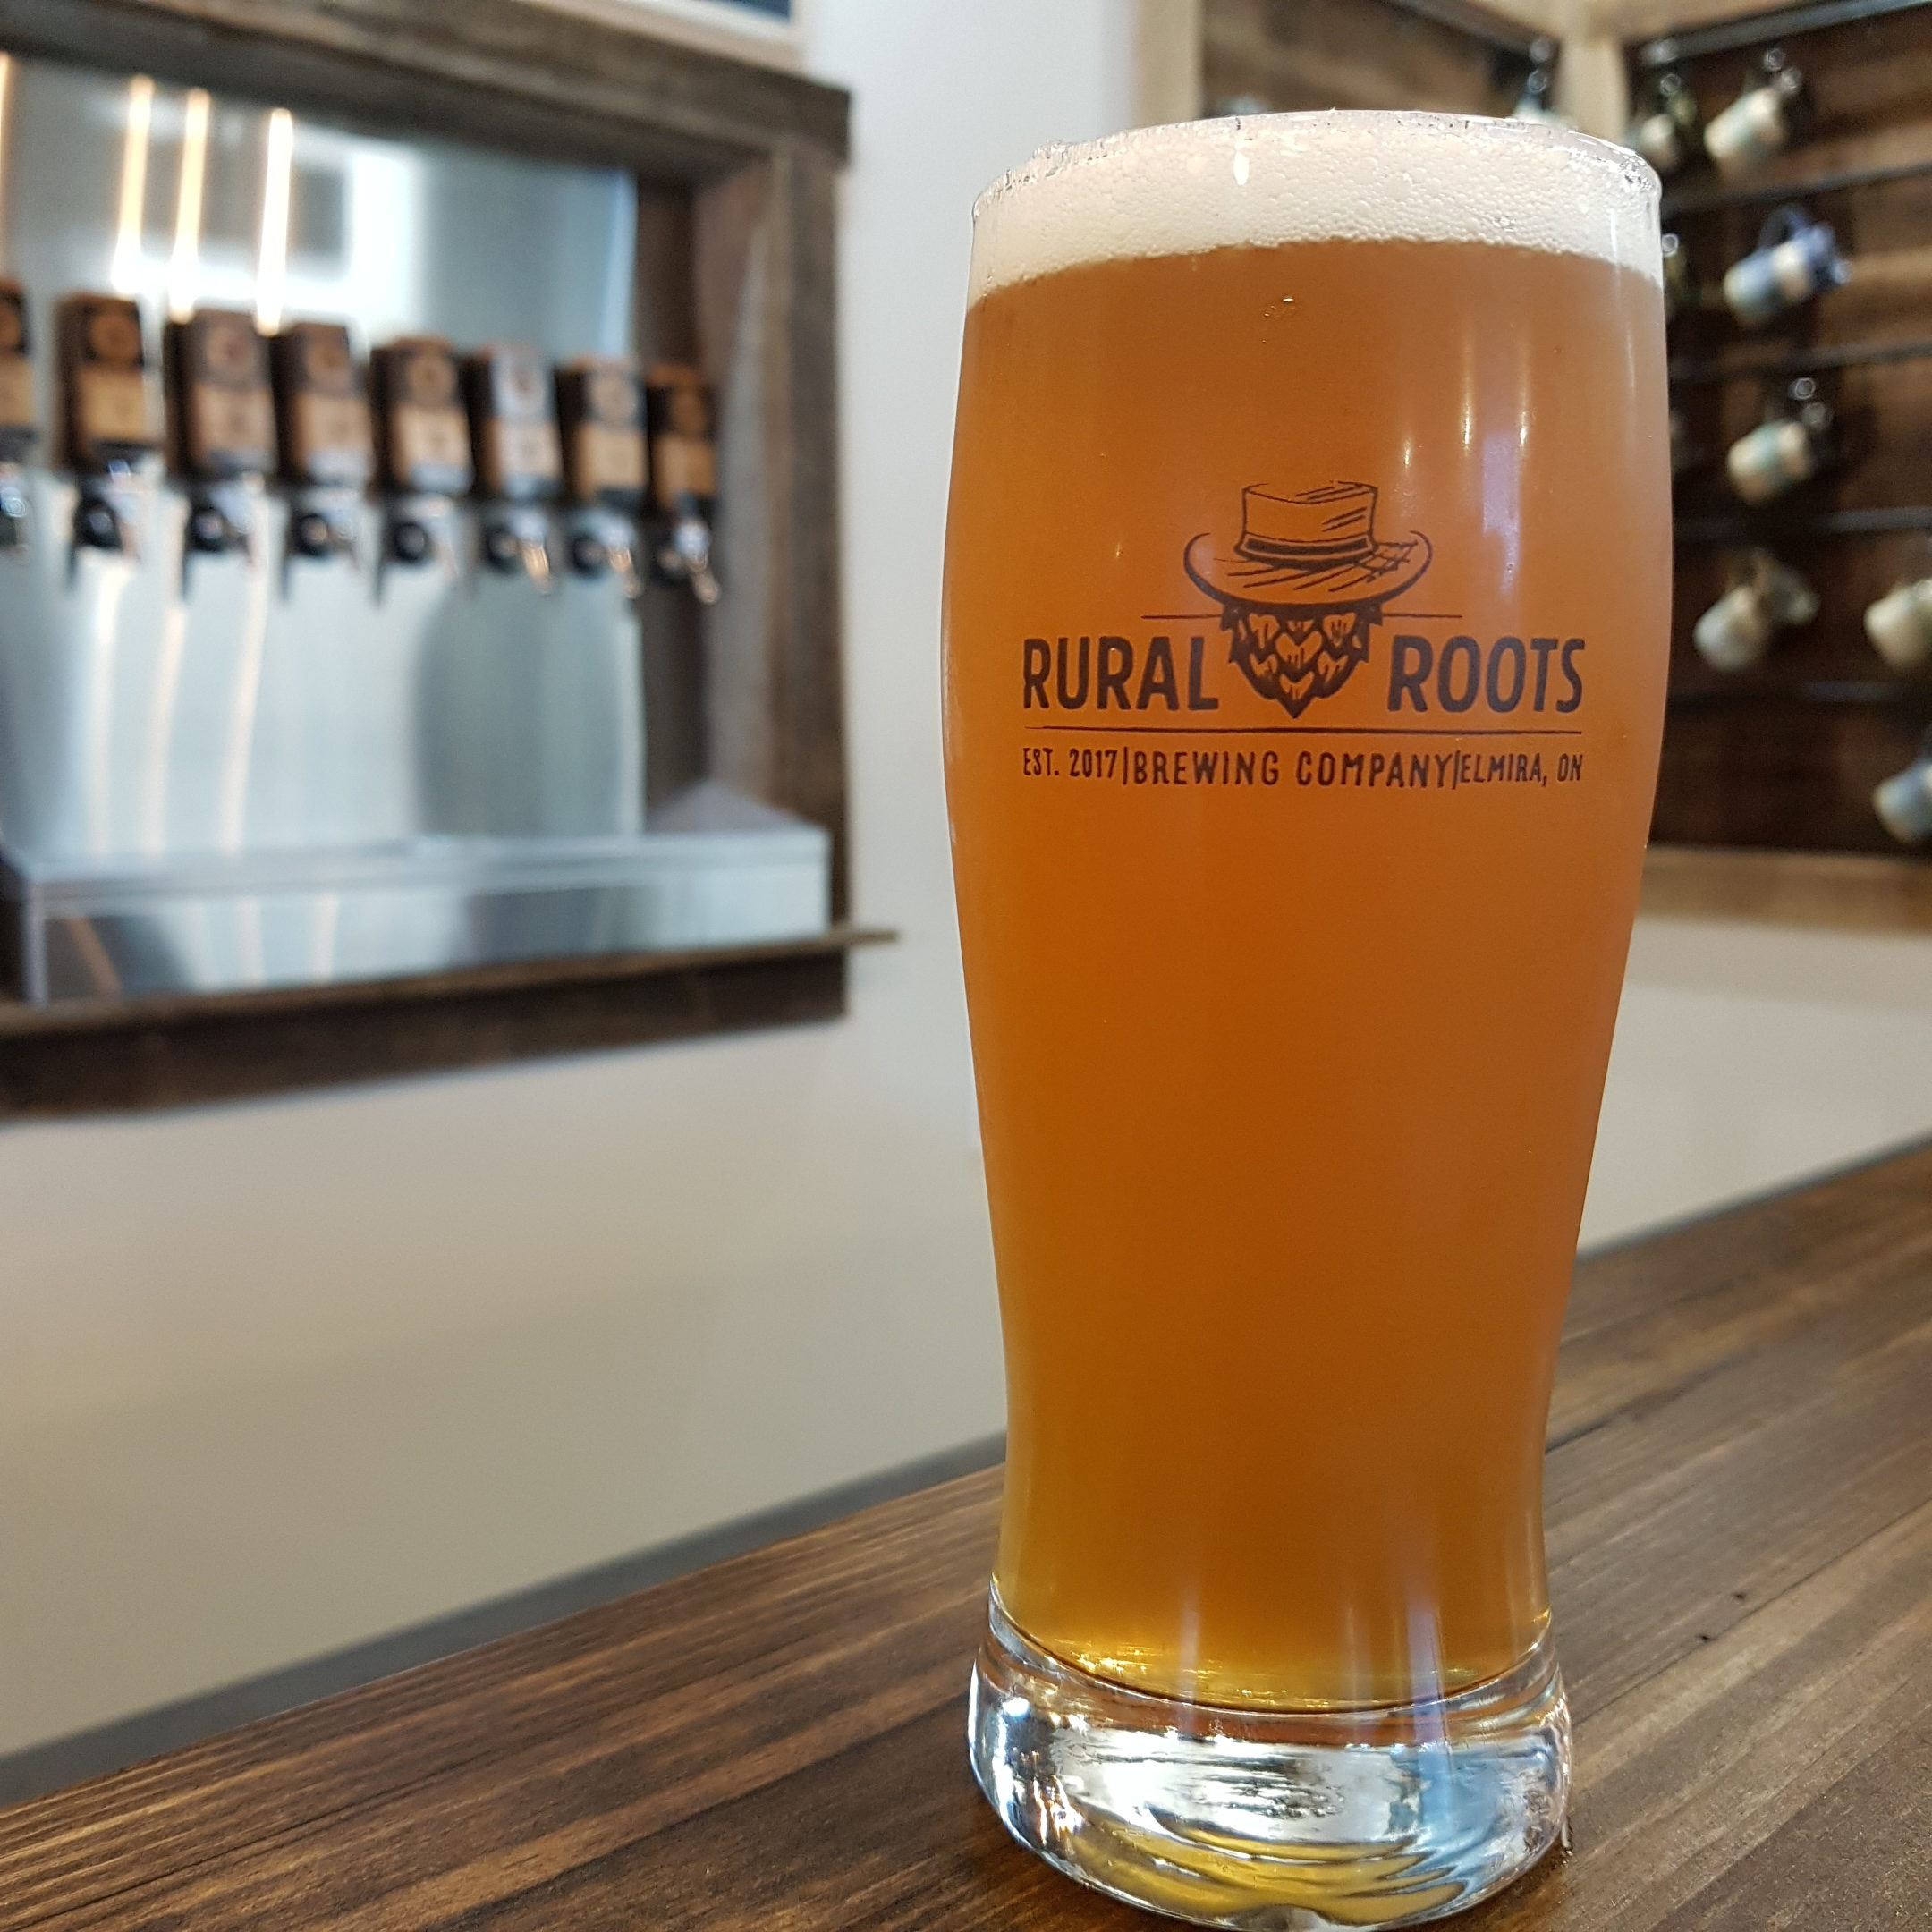 https://ruralrootsbrewery.ca/wp-content/uploads/2019/08/NQIPA_RuralRoots-e1565751647479.jpg